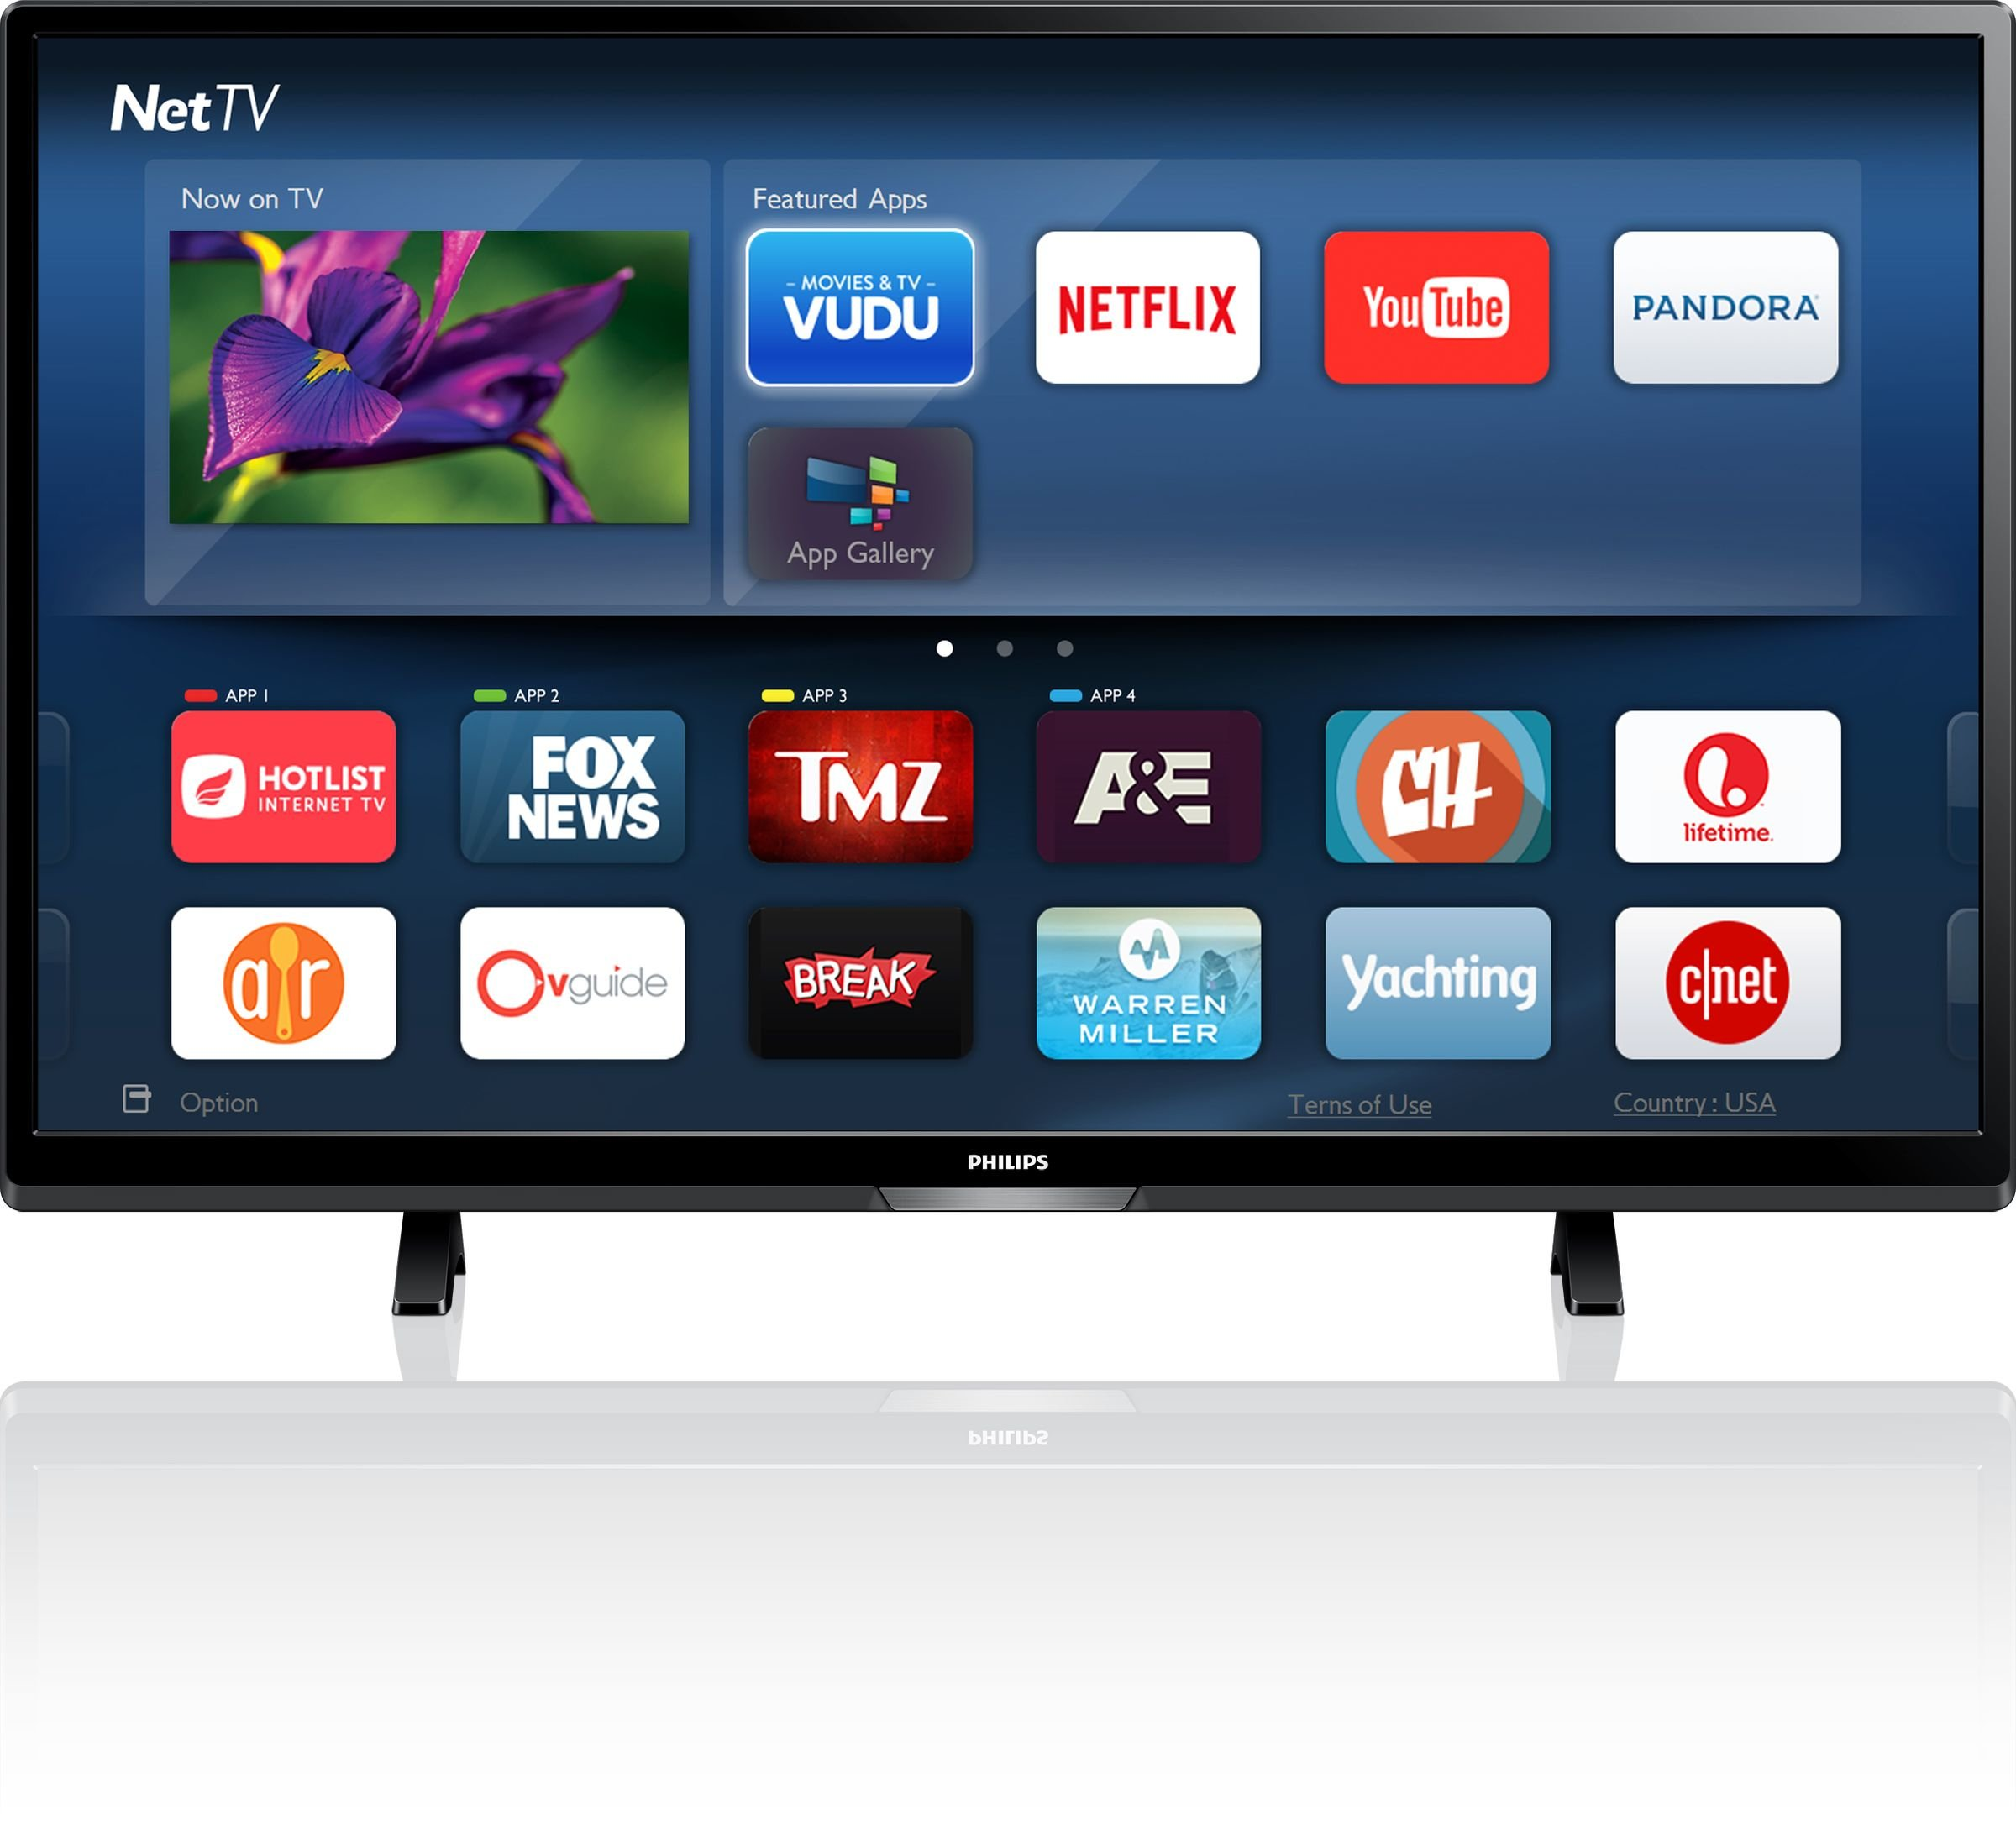 An image of Philips 5000 Series 50PFL5602/F7 50-Inch HDR 3D 4K LED TV with Motion Rate 120